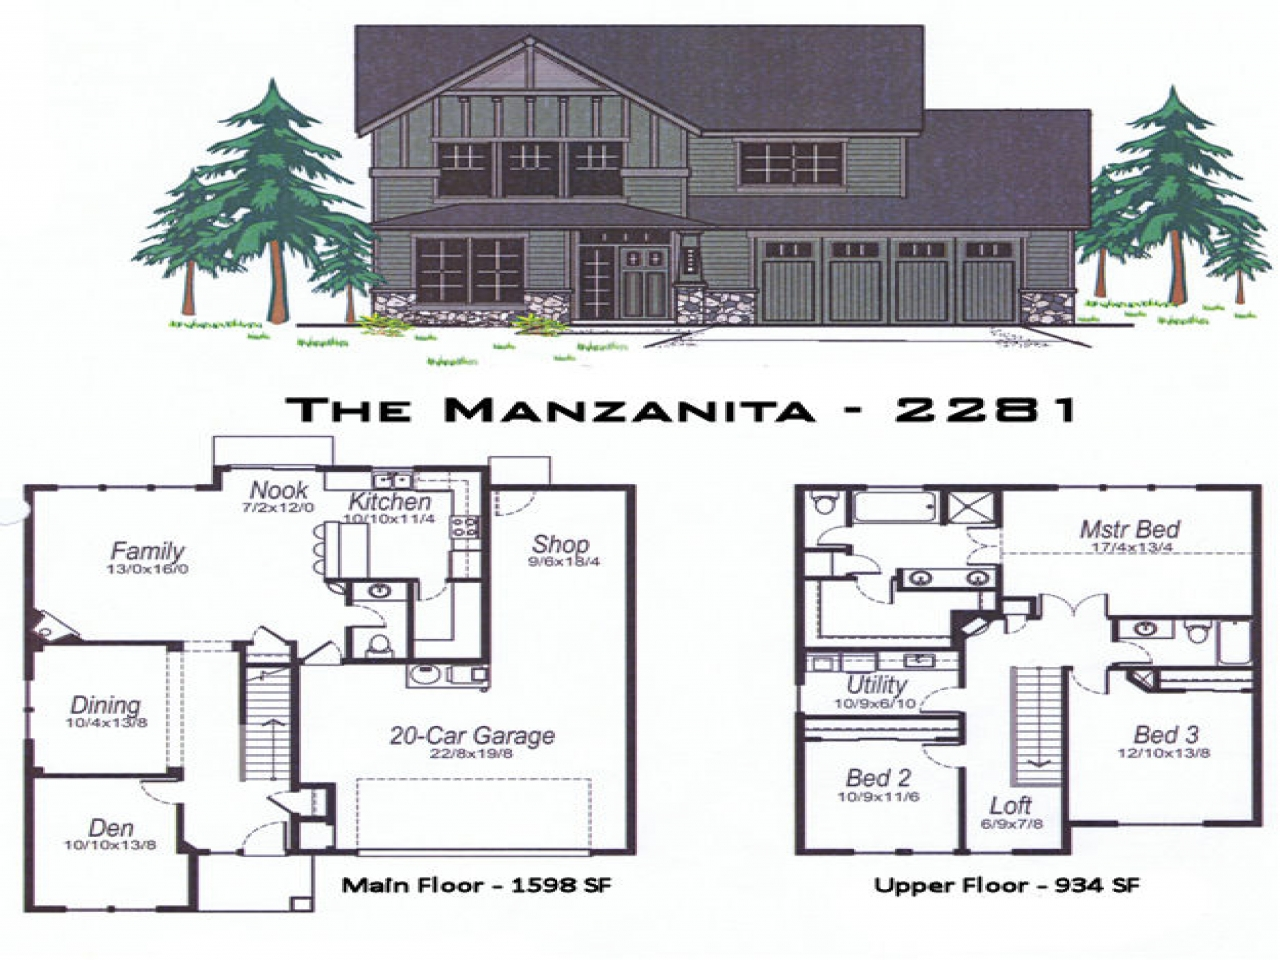 2500 sq ft square house plans 2500 sq ft floor plans for 2500 sq ft ranch house plans